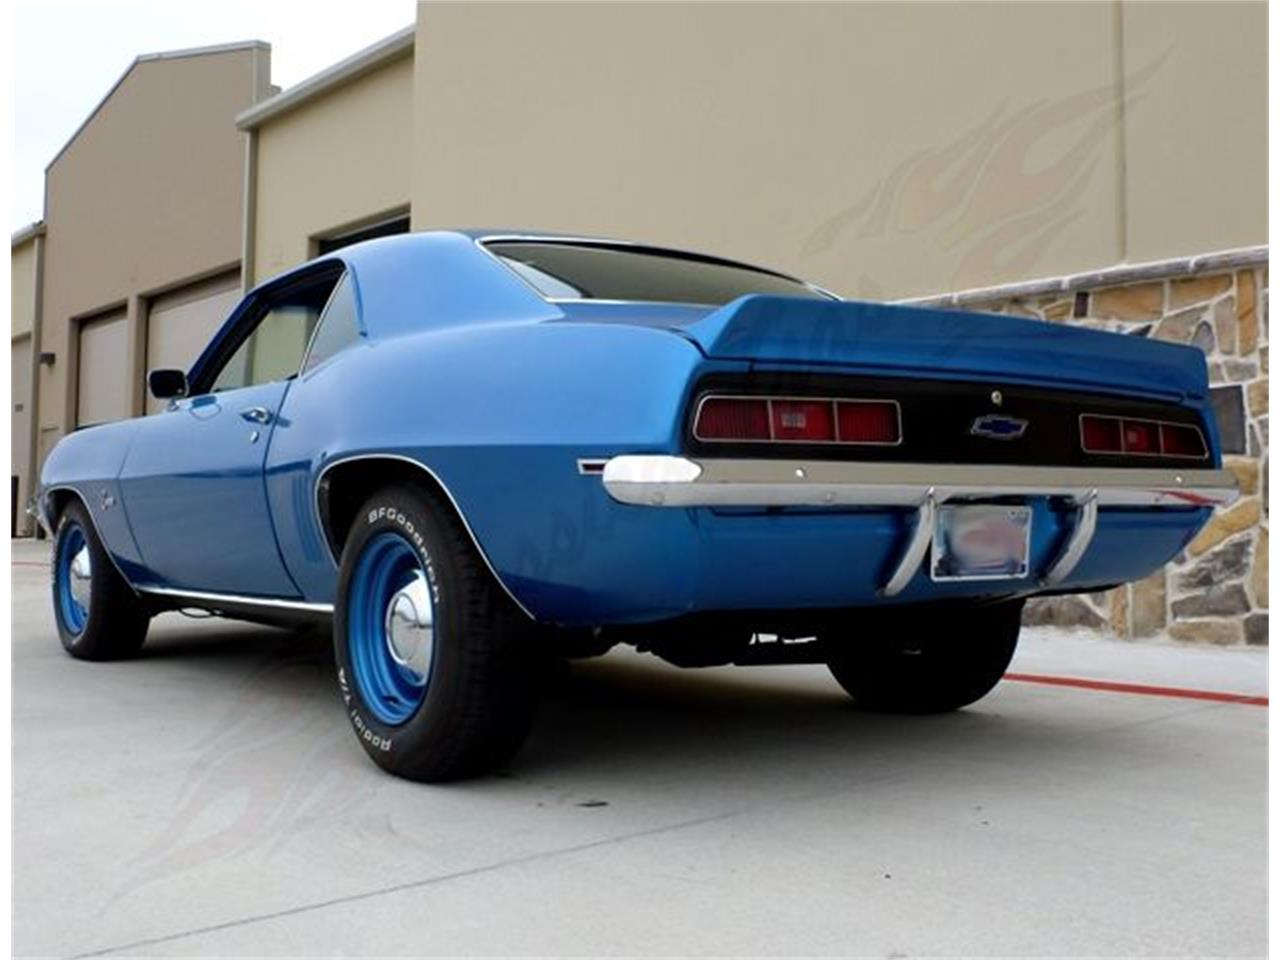 Large Picture of Classic 1969 Camaro located in Texas - $62,000.00 Offered by Classical Gas Enterprises - KUGL